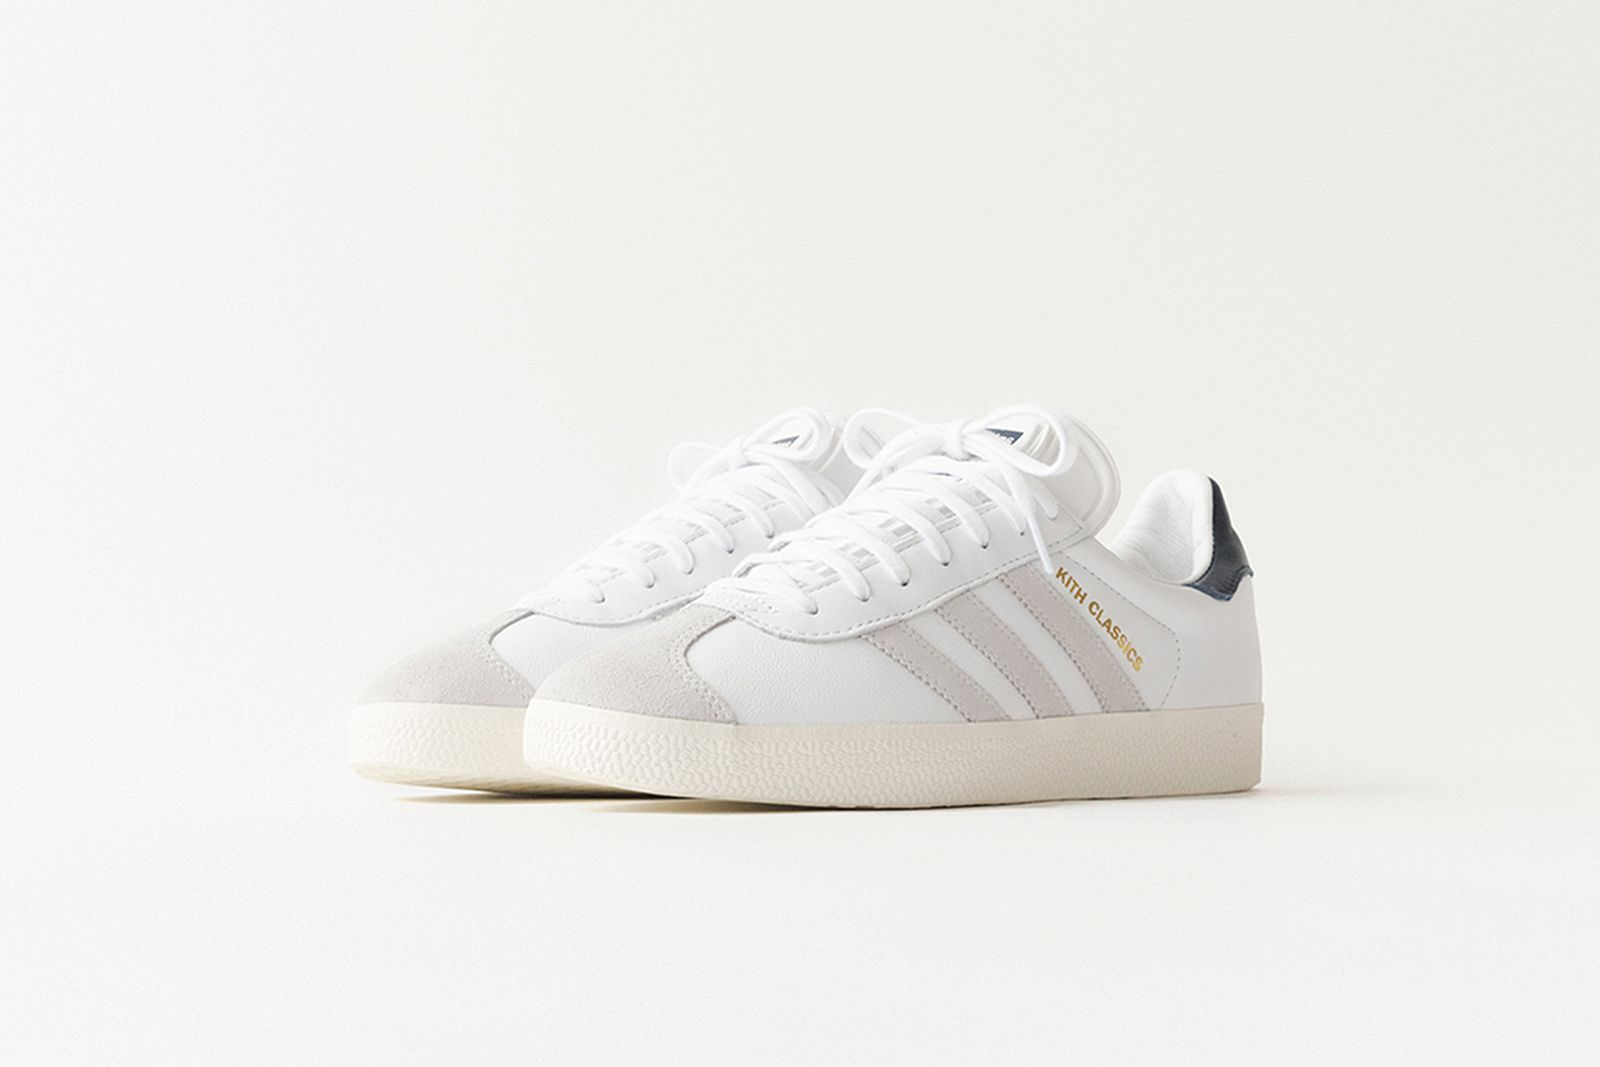 kith-adidas-summer-2021-release-info-17